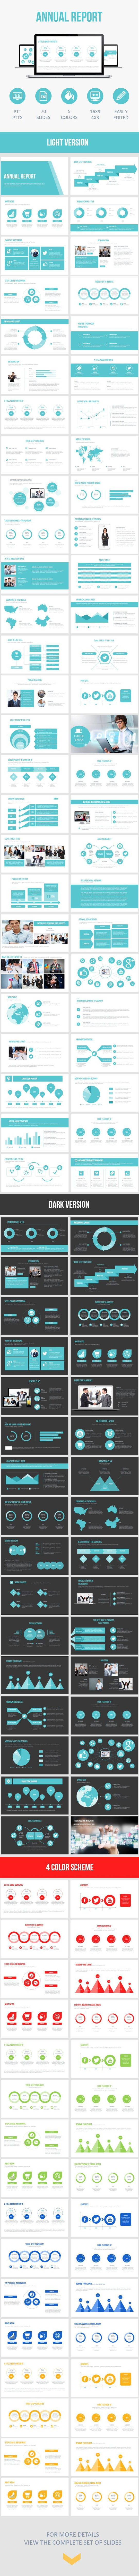 Annual Report (Powerpoint Templates) Image 20Preview 20 (scheduled via http://www.tailwindapp.com?utm_source=pinterest&utm_medium=twpin&utm_content=post28177844&utm_campaign=scheduler_attribution)